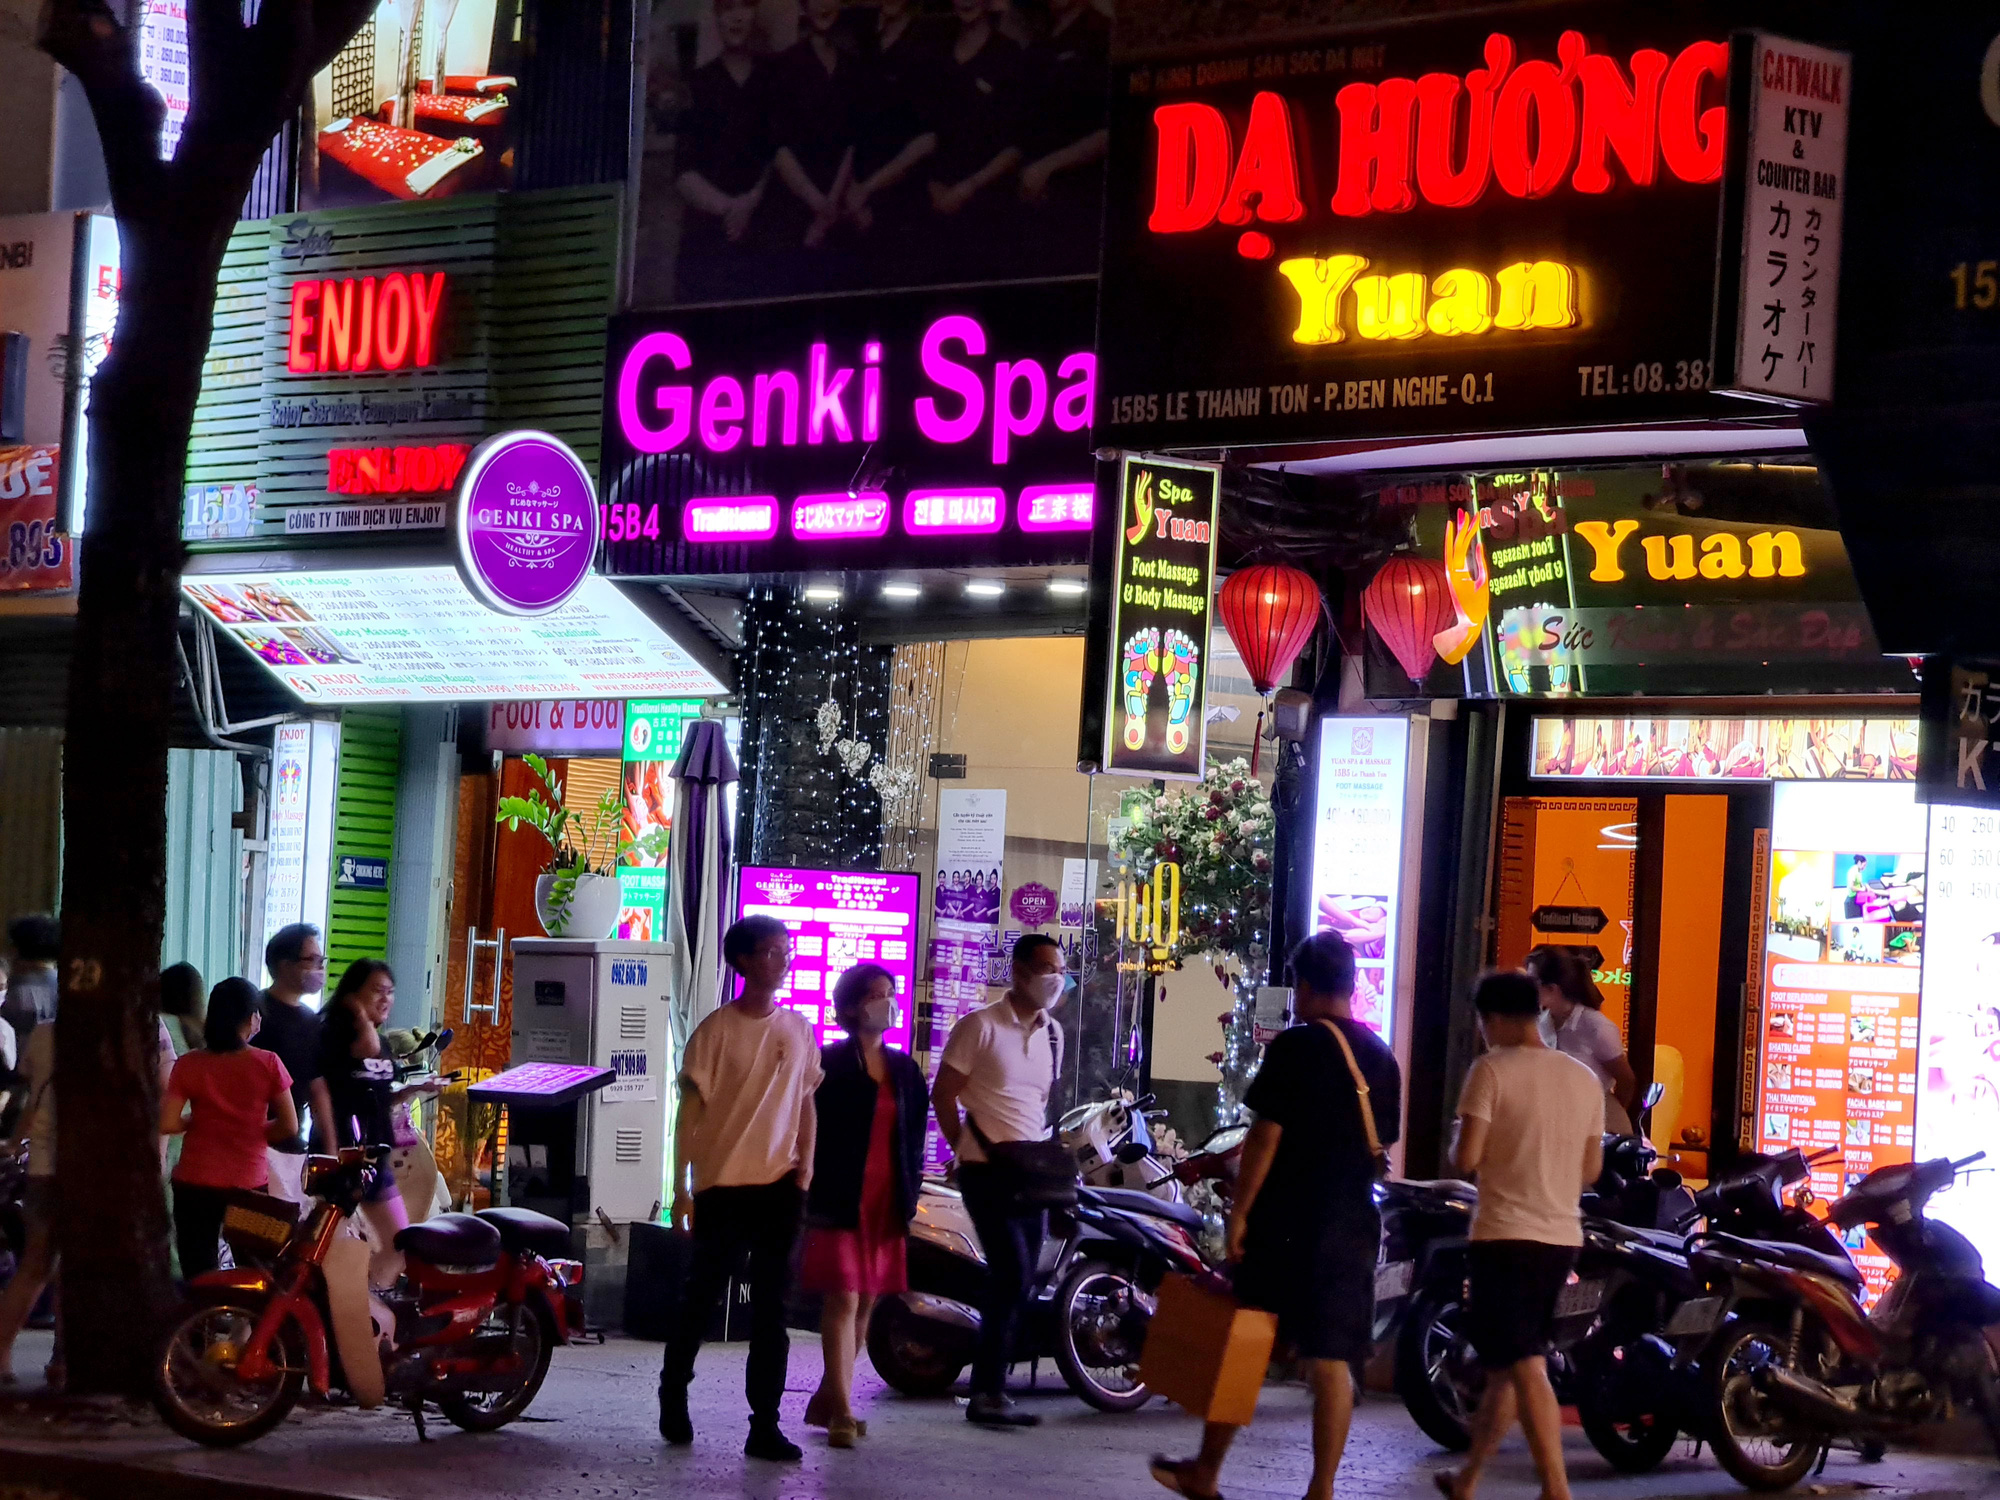 Spas and other businesses are reopened on Le Thanh Ton Street in District 1, Ho Chi Minh City on May 9, 2020. Photo: Ngoc Hien / Tuoi Tre